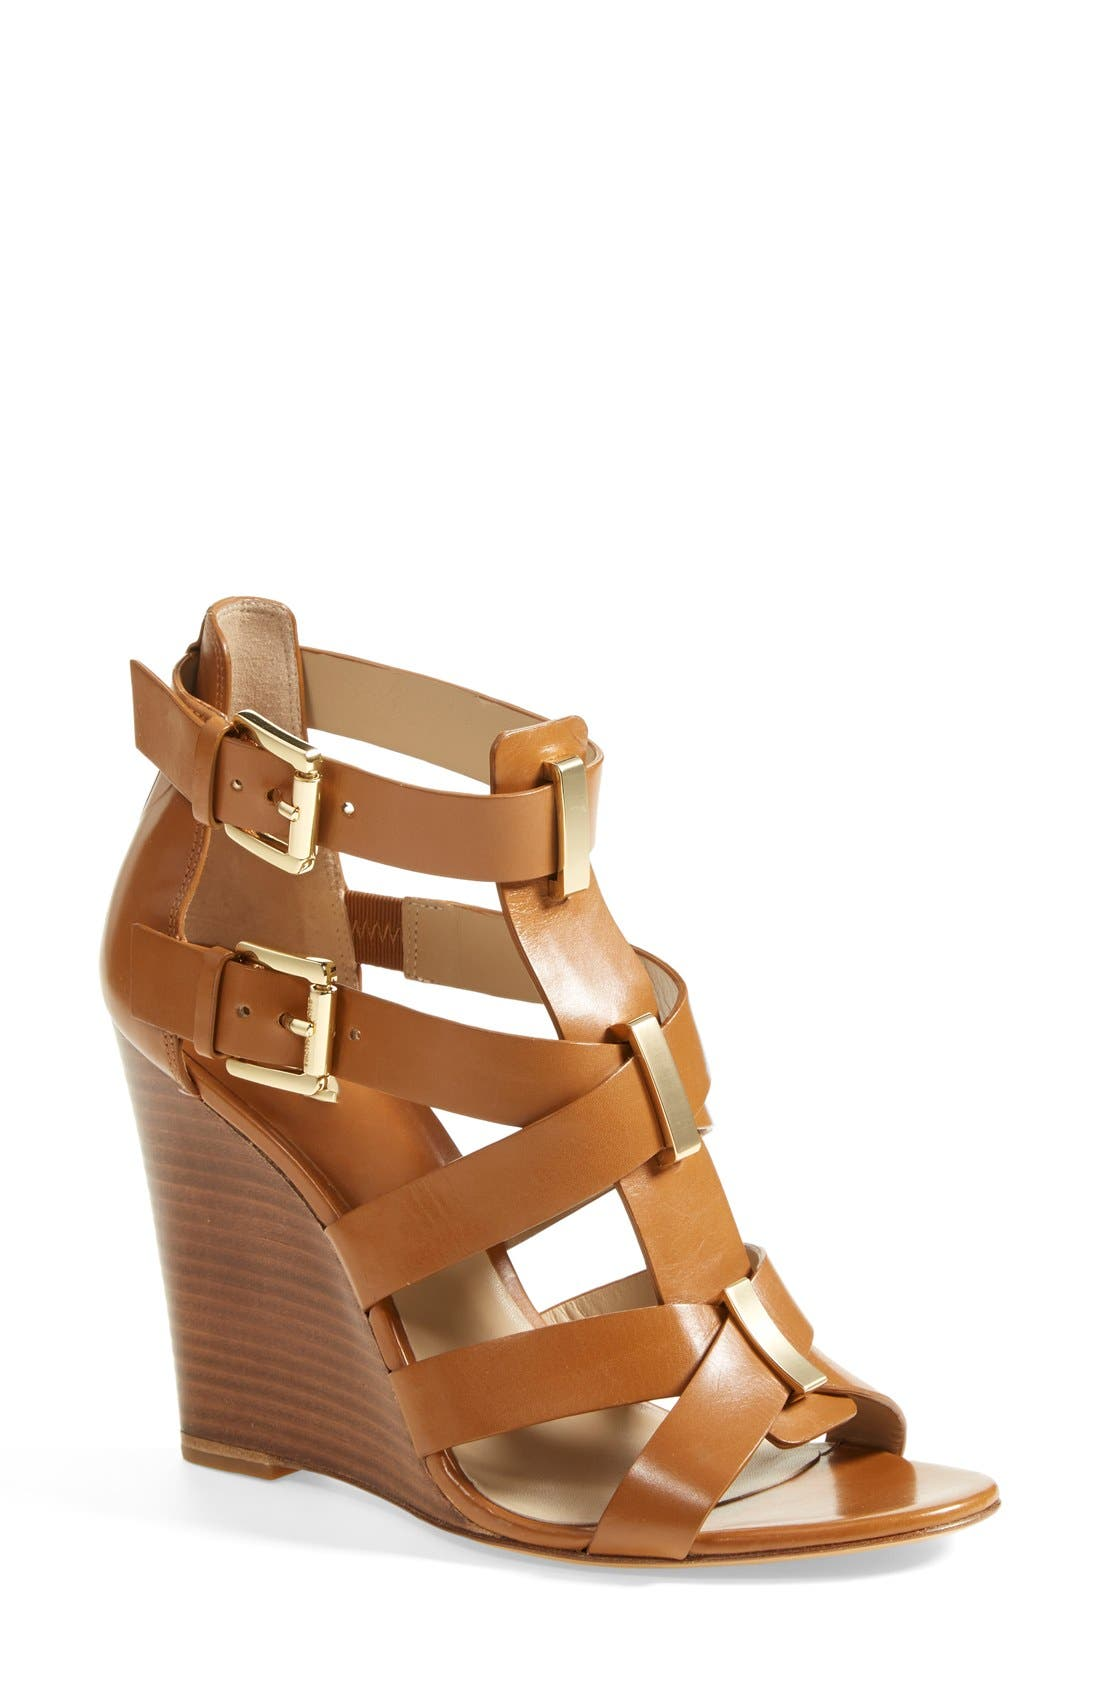 Main Image - Michael Kors 'Reagan' Wedge Sandal (Women)